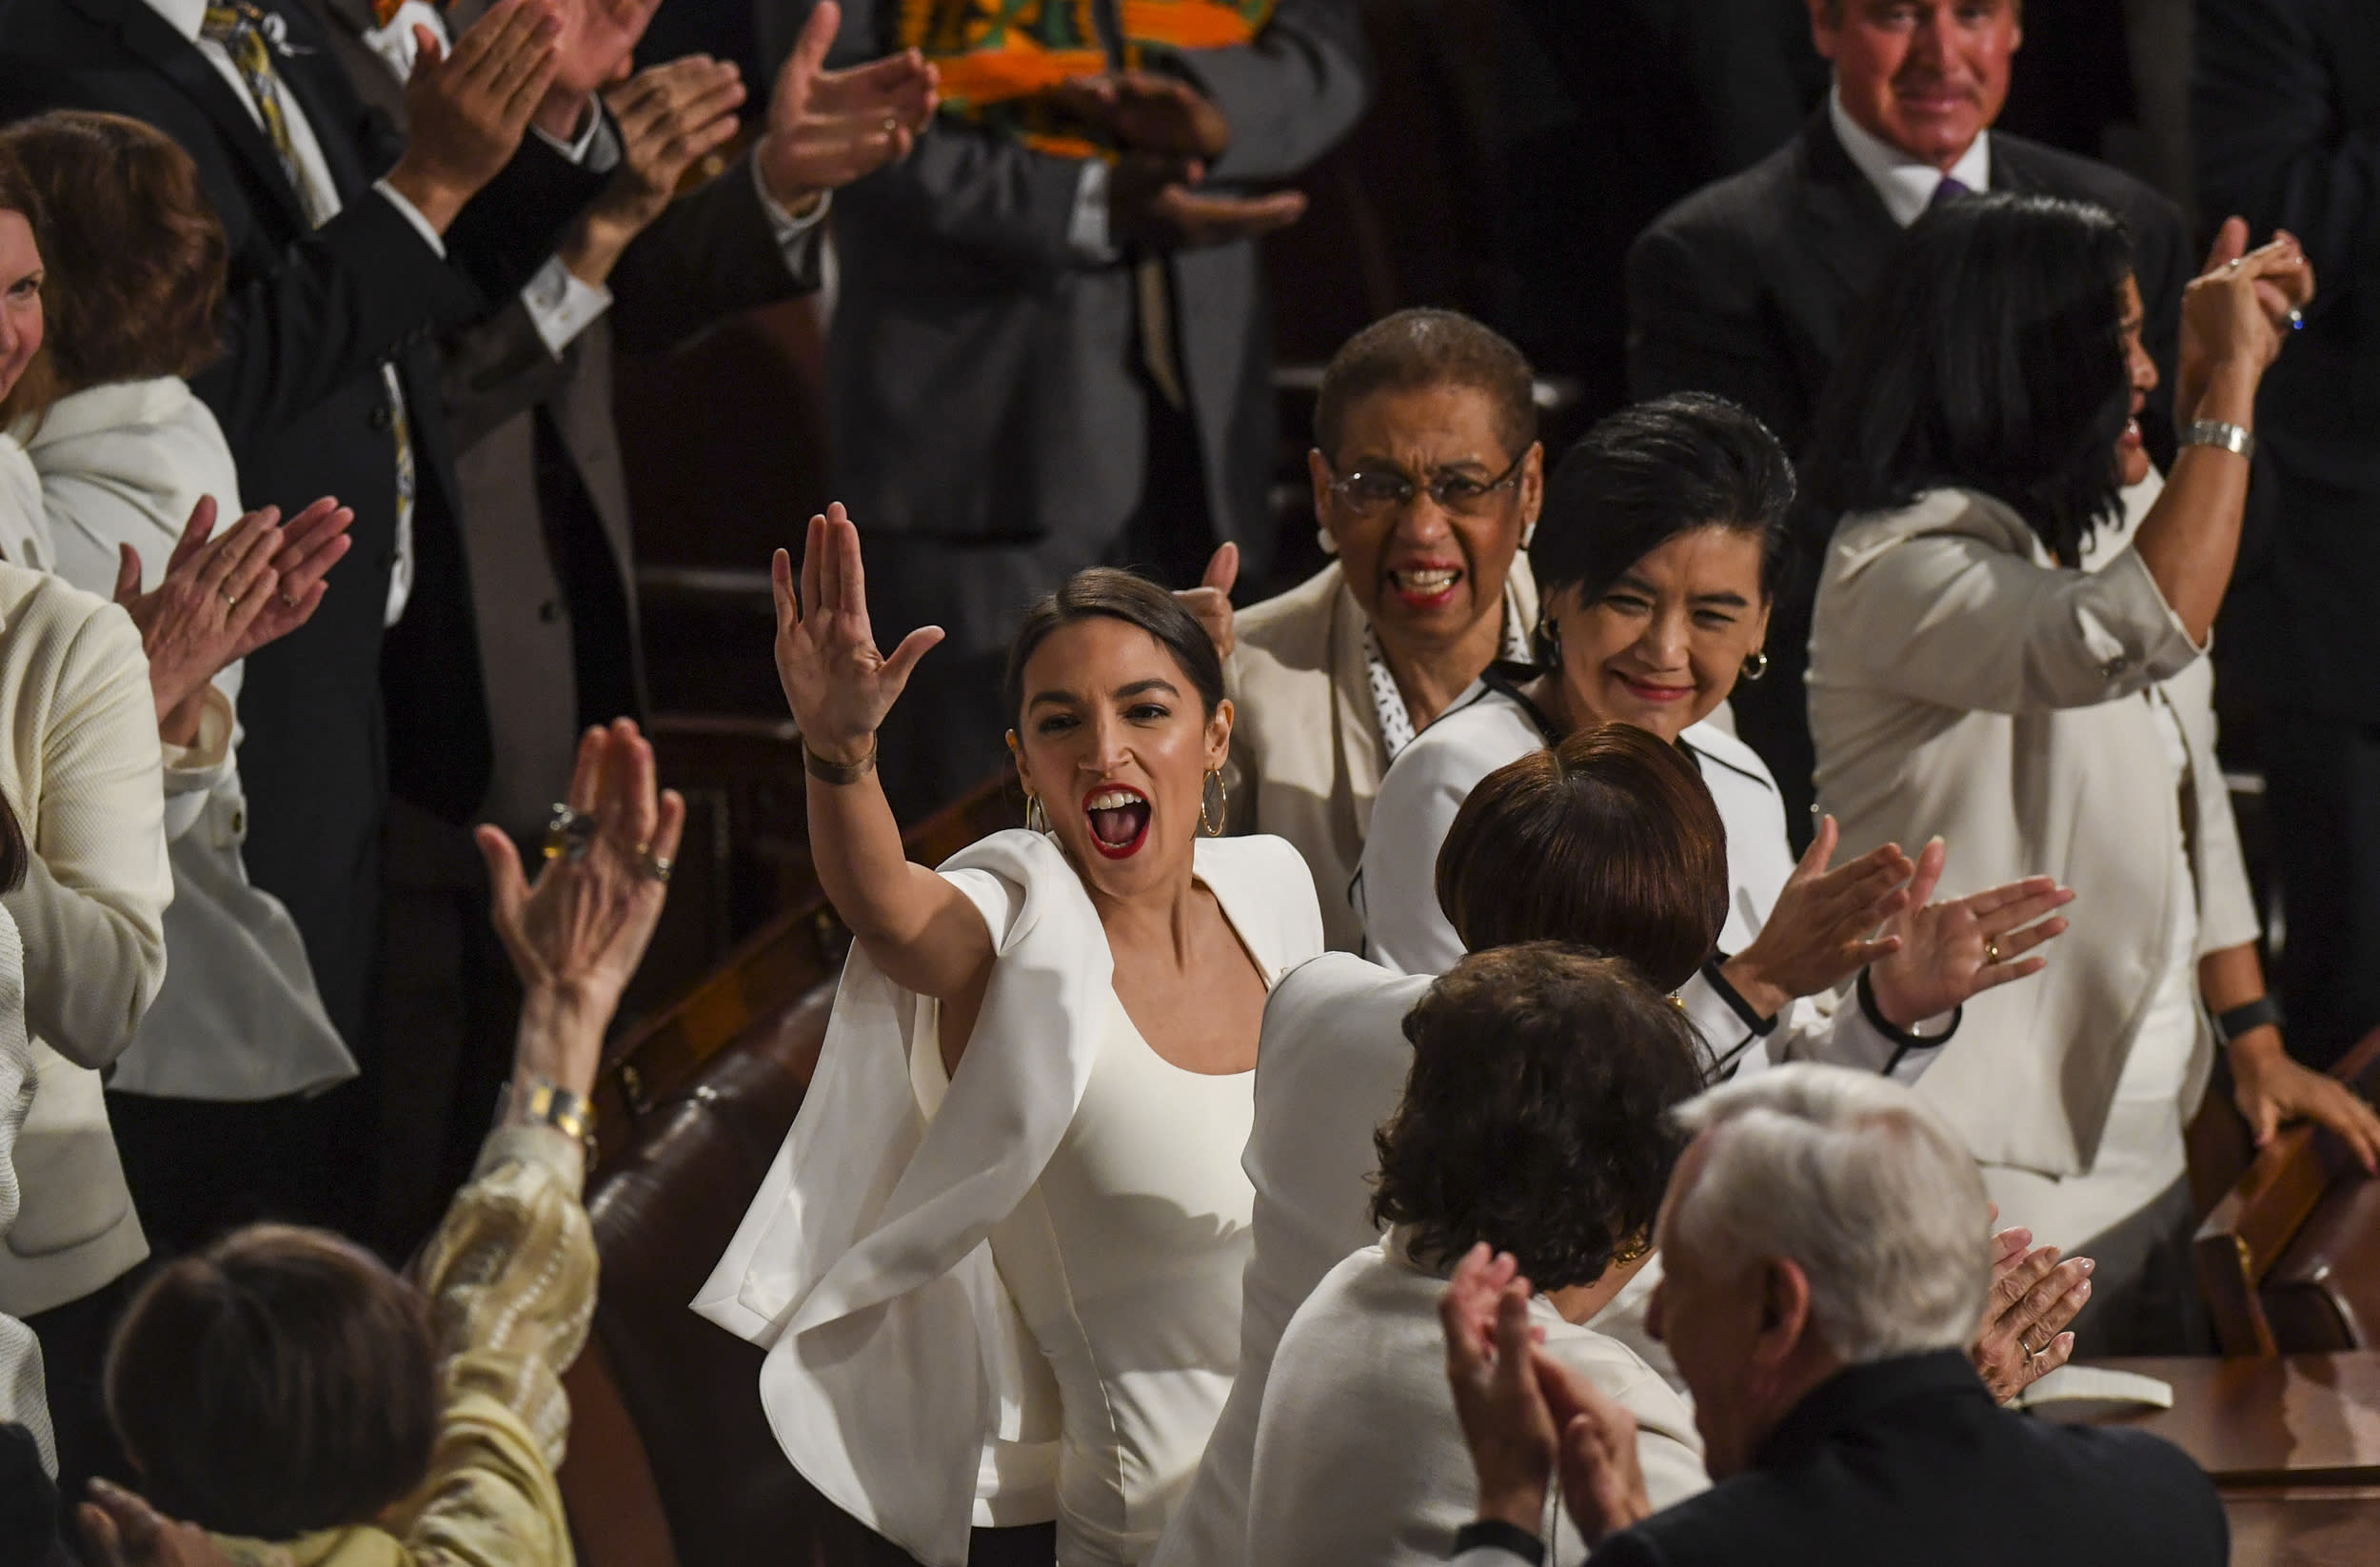 WASHINGTON, DC - FEBRUARY 05: Rep. Alexandria Ocasio-Cortez (D-N.Y.) high-fives other congresswomen after President Donald J. Trump acknowledged newly elected female members of congress during the State of the Union address before members of Congress in the House chamber of the U.S. Capitol February 5, 2019 in Washington, DC.  (Photo by Toni L. Sandys/The Washington Post via Getty Images)